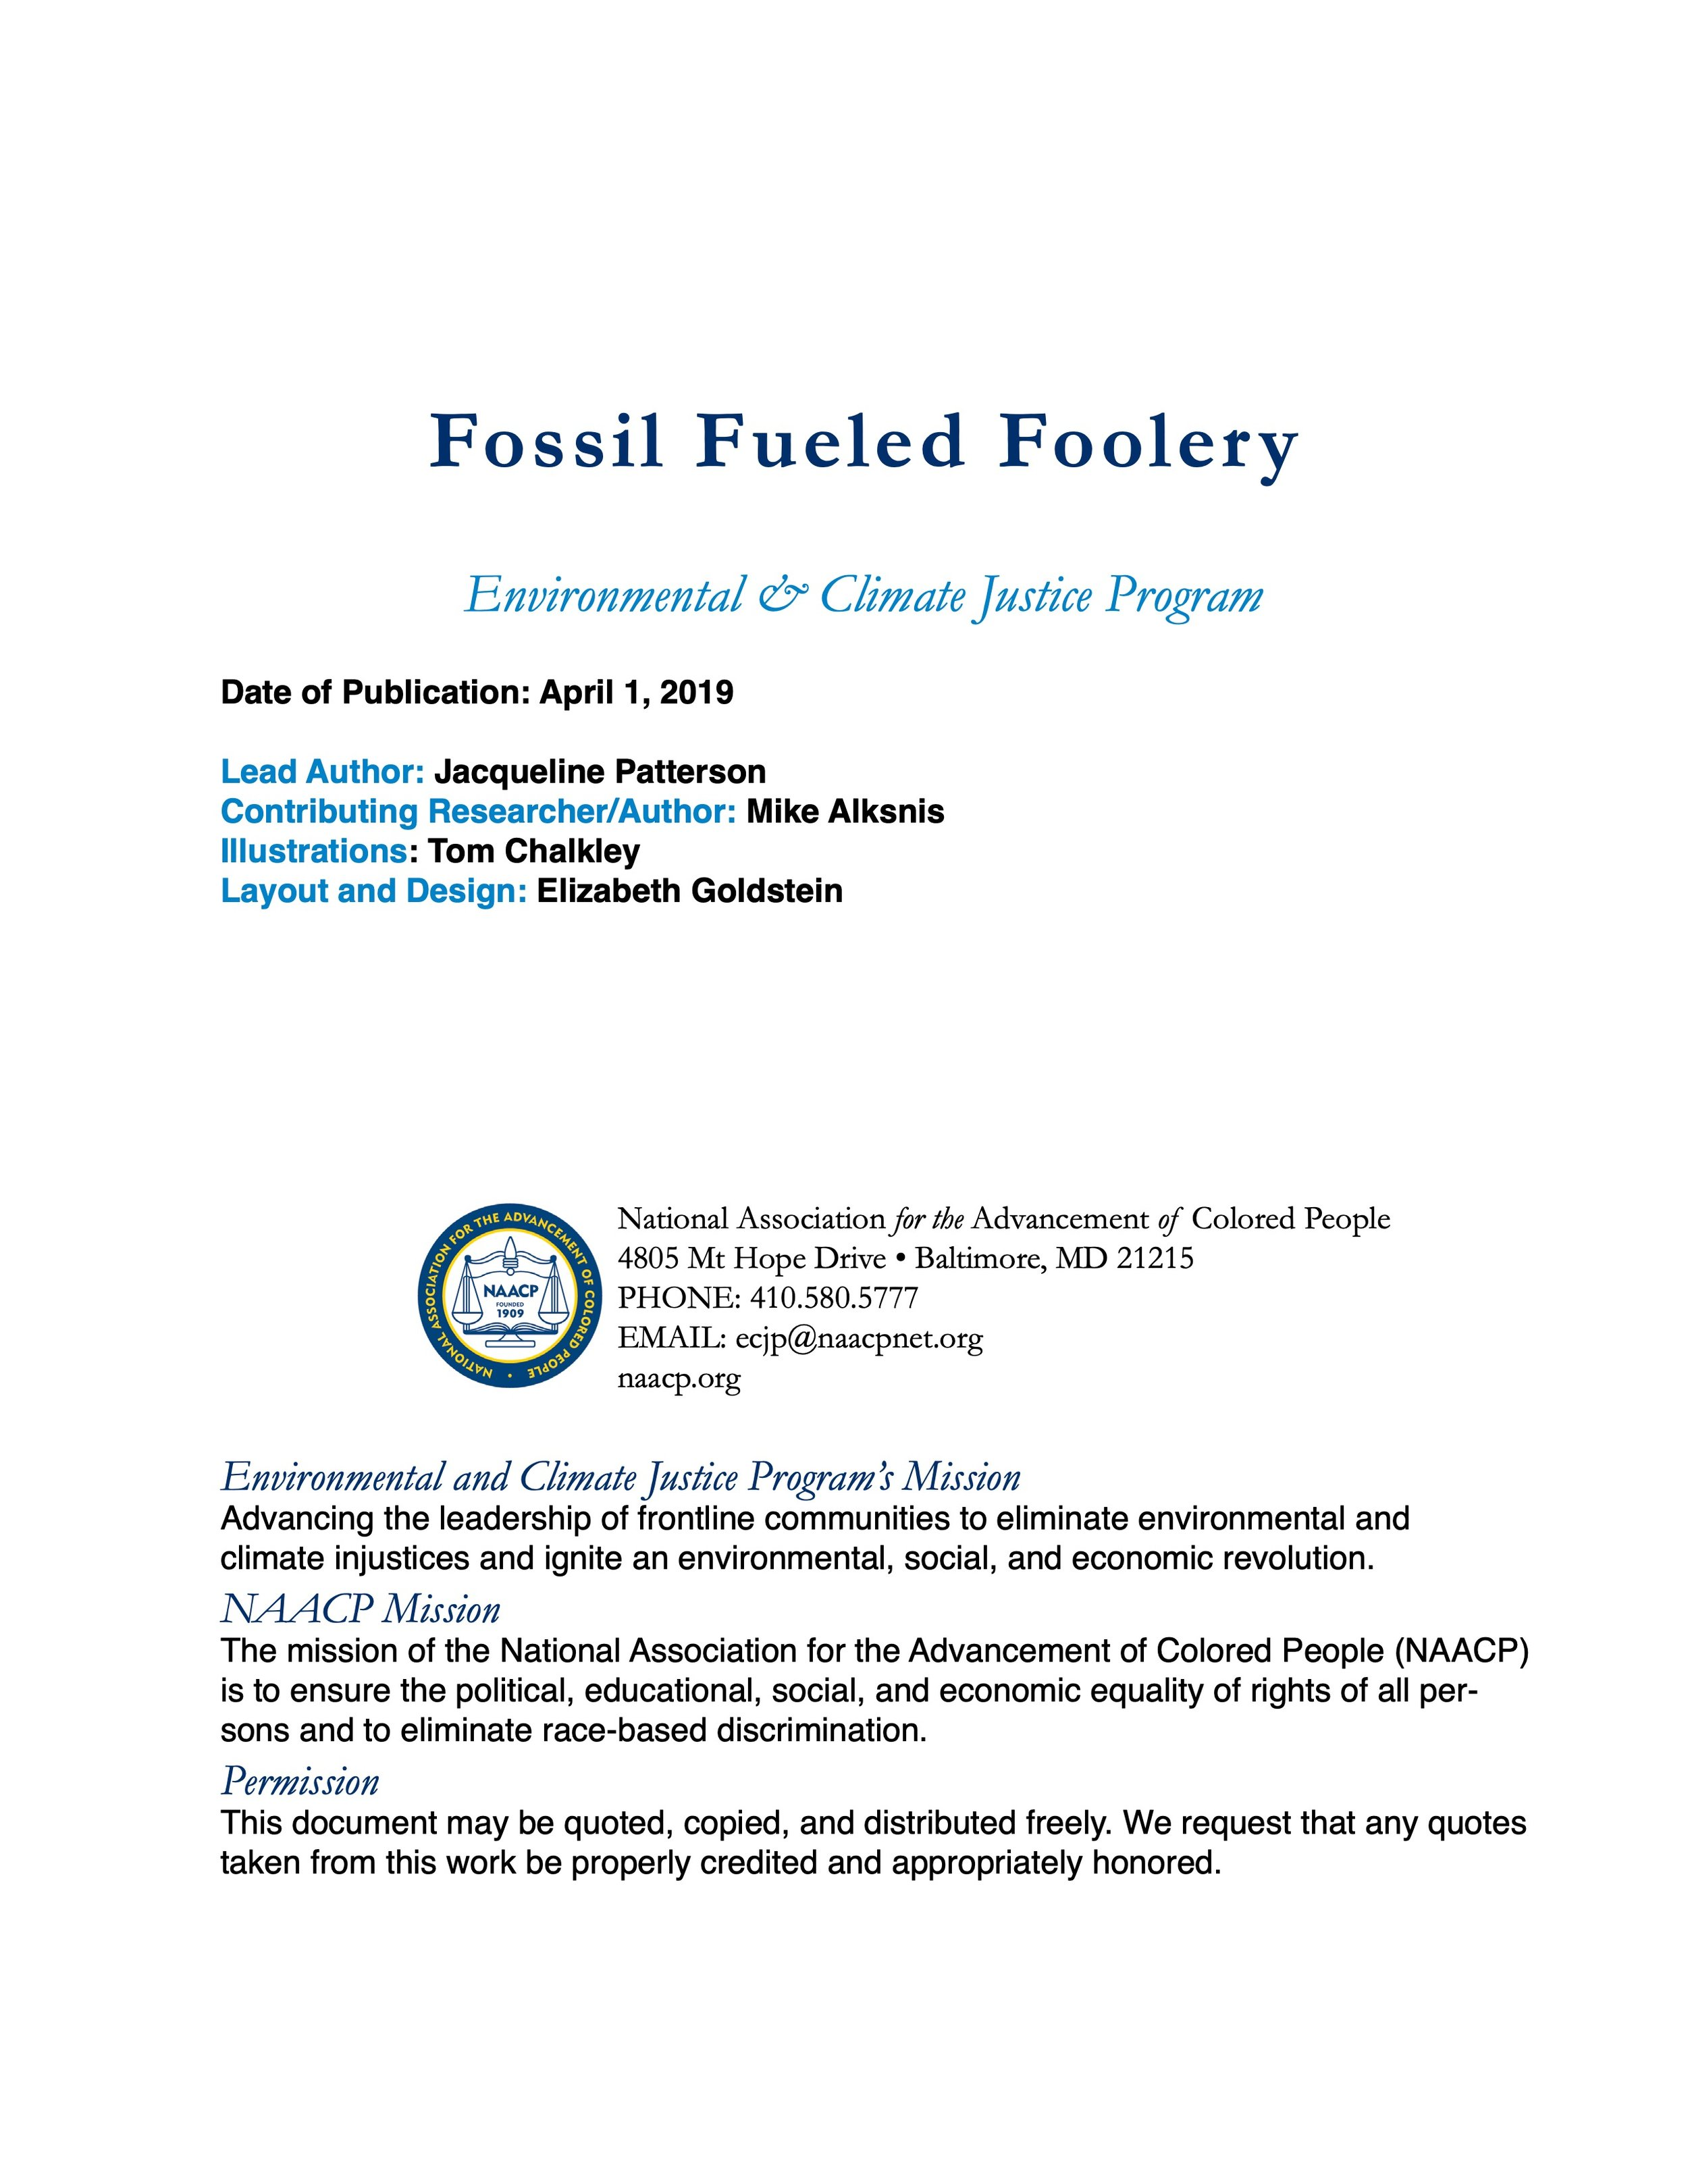 Fossil-Fueled-Foolery-An-Illustrated-Primer-on-the-Top-10-Manipulation-Tactics-of-the-Fossil-Fuel-Industry 2.jpeg